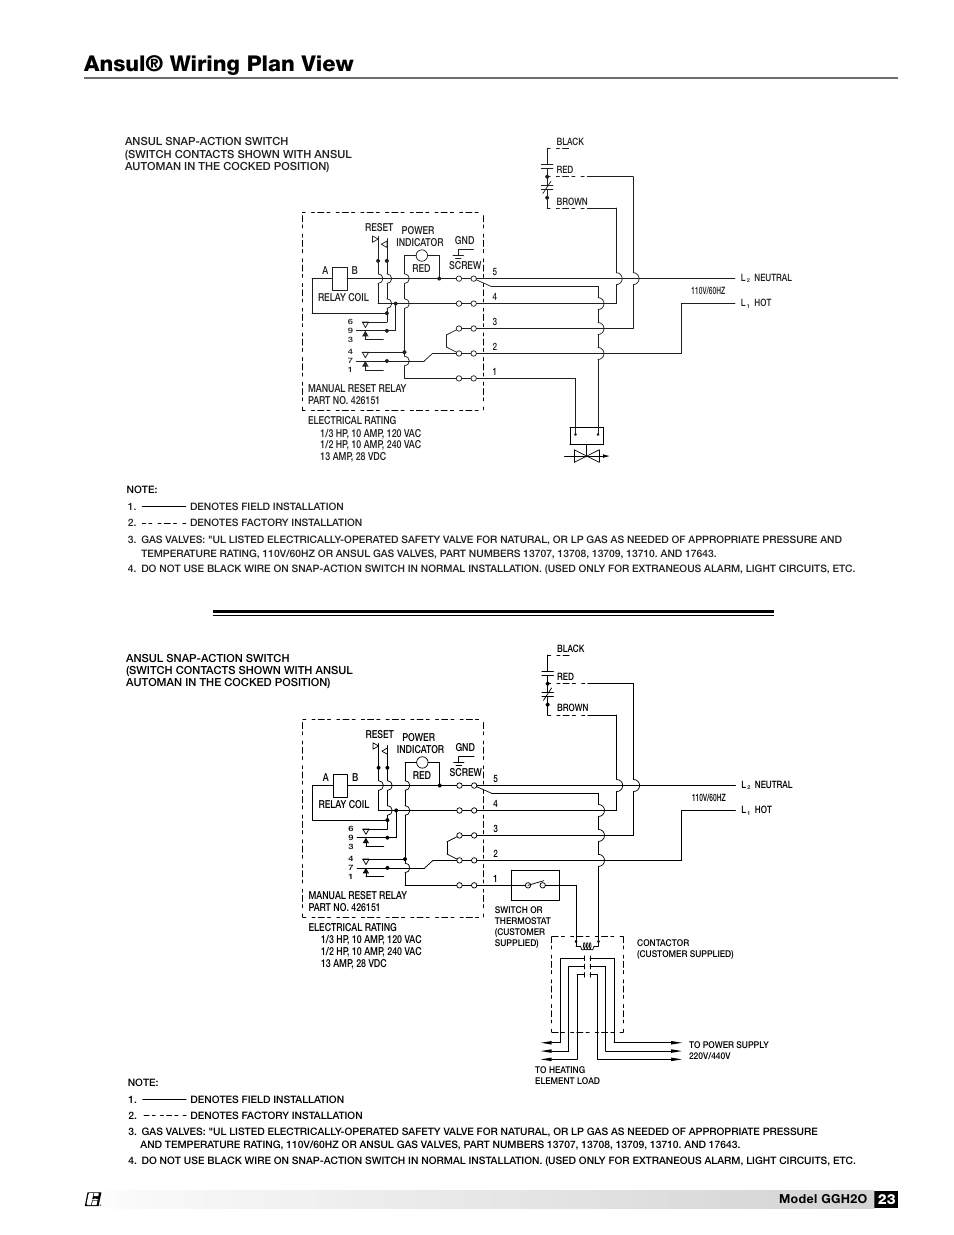 medium resolution of ansul wiring plan view greenheck fan grease grabber h2o auto cleaning hood ggh20 user manual page 23 28